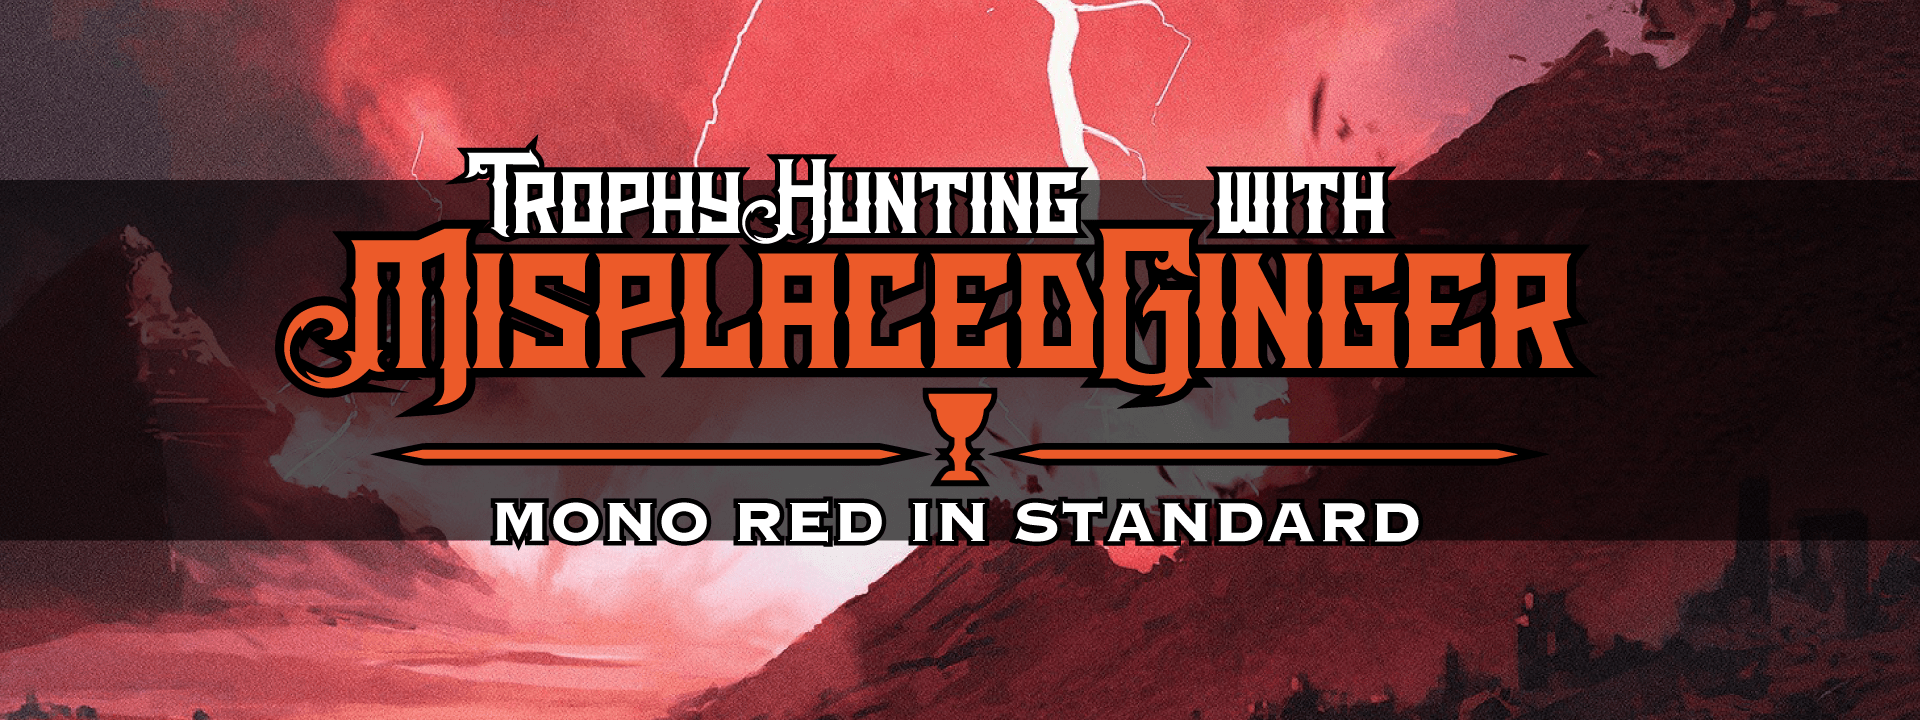 Mono-Red with MisplacedGinger